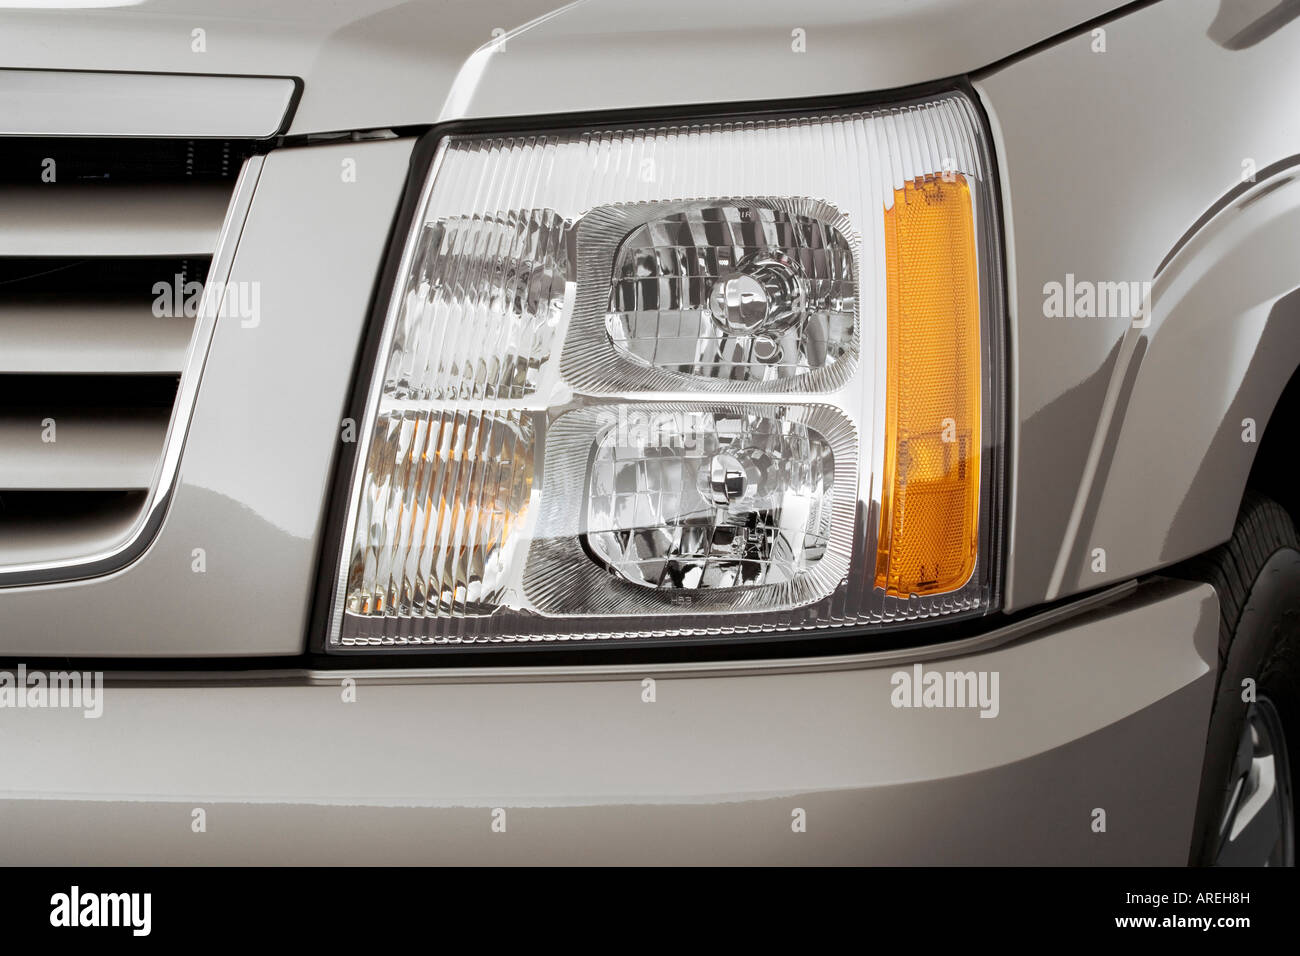 2006 Cadillac Escalade ESV in Silver - Headlight Stock Photo ... on escalade led headlights, escalade on 28s, escalade grill, escalade led lights for an inner,